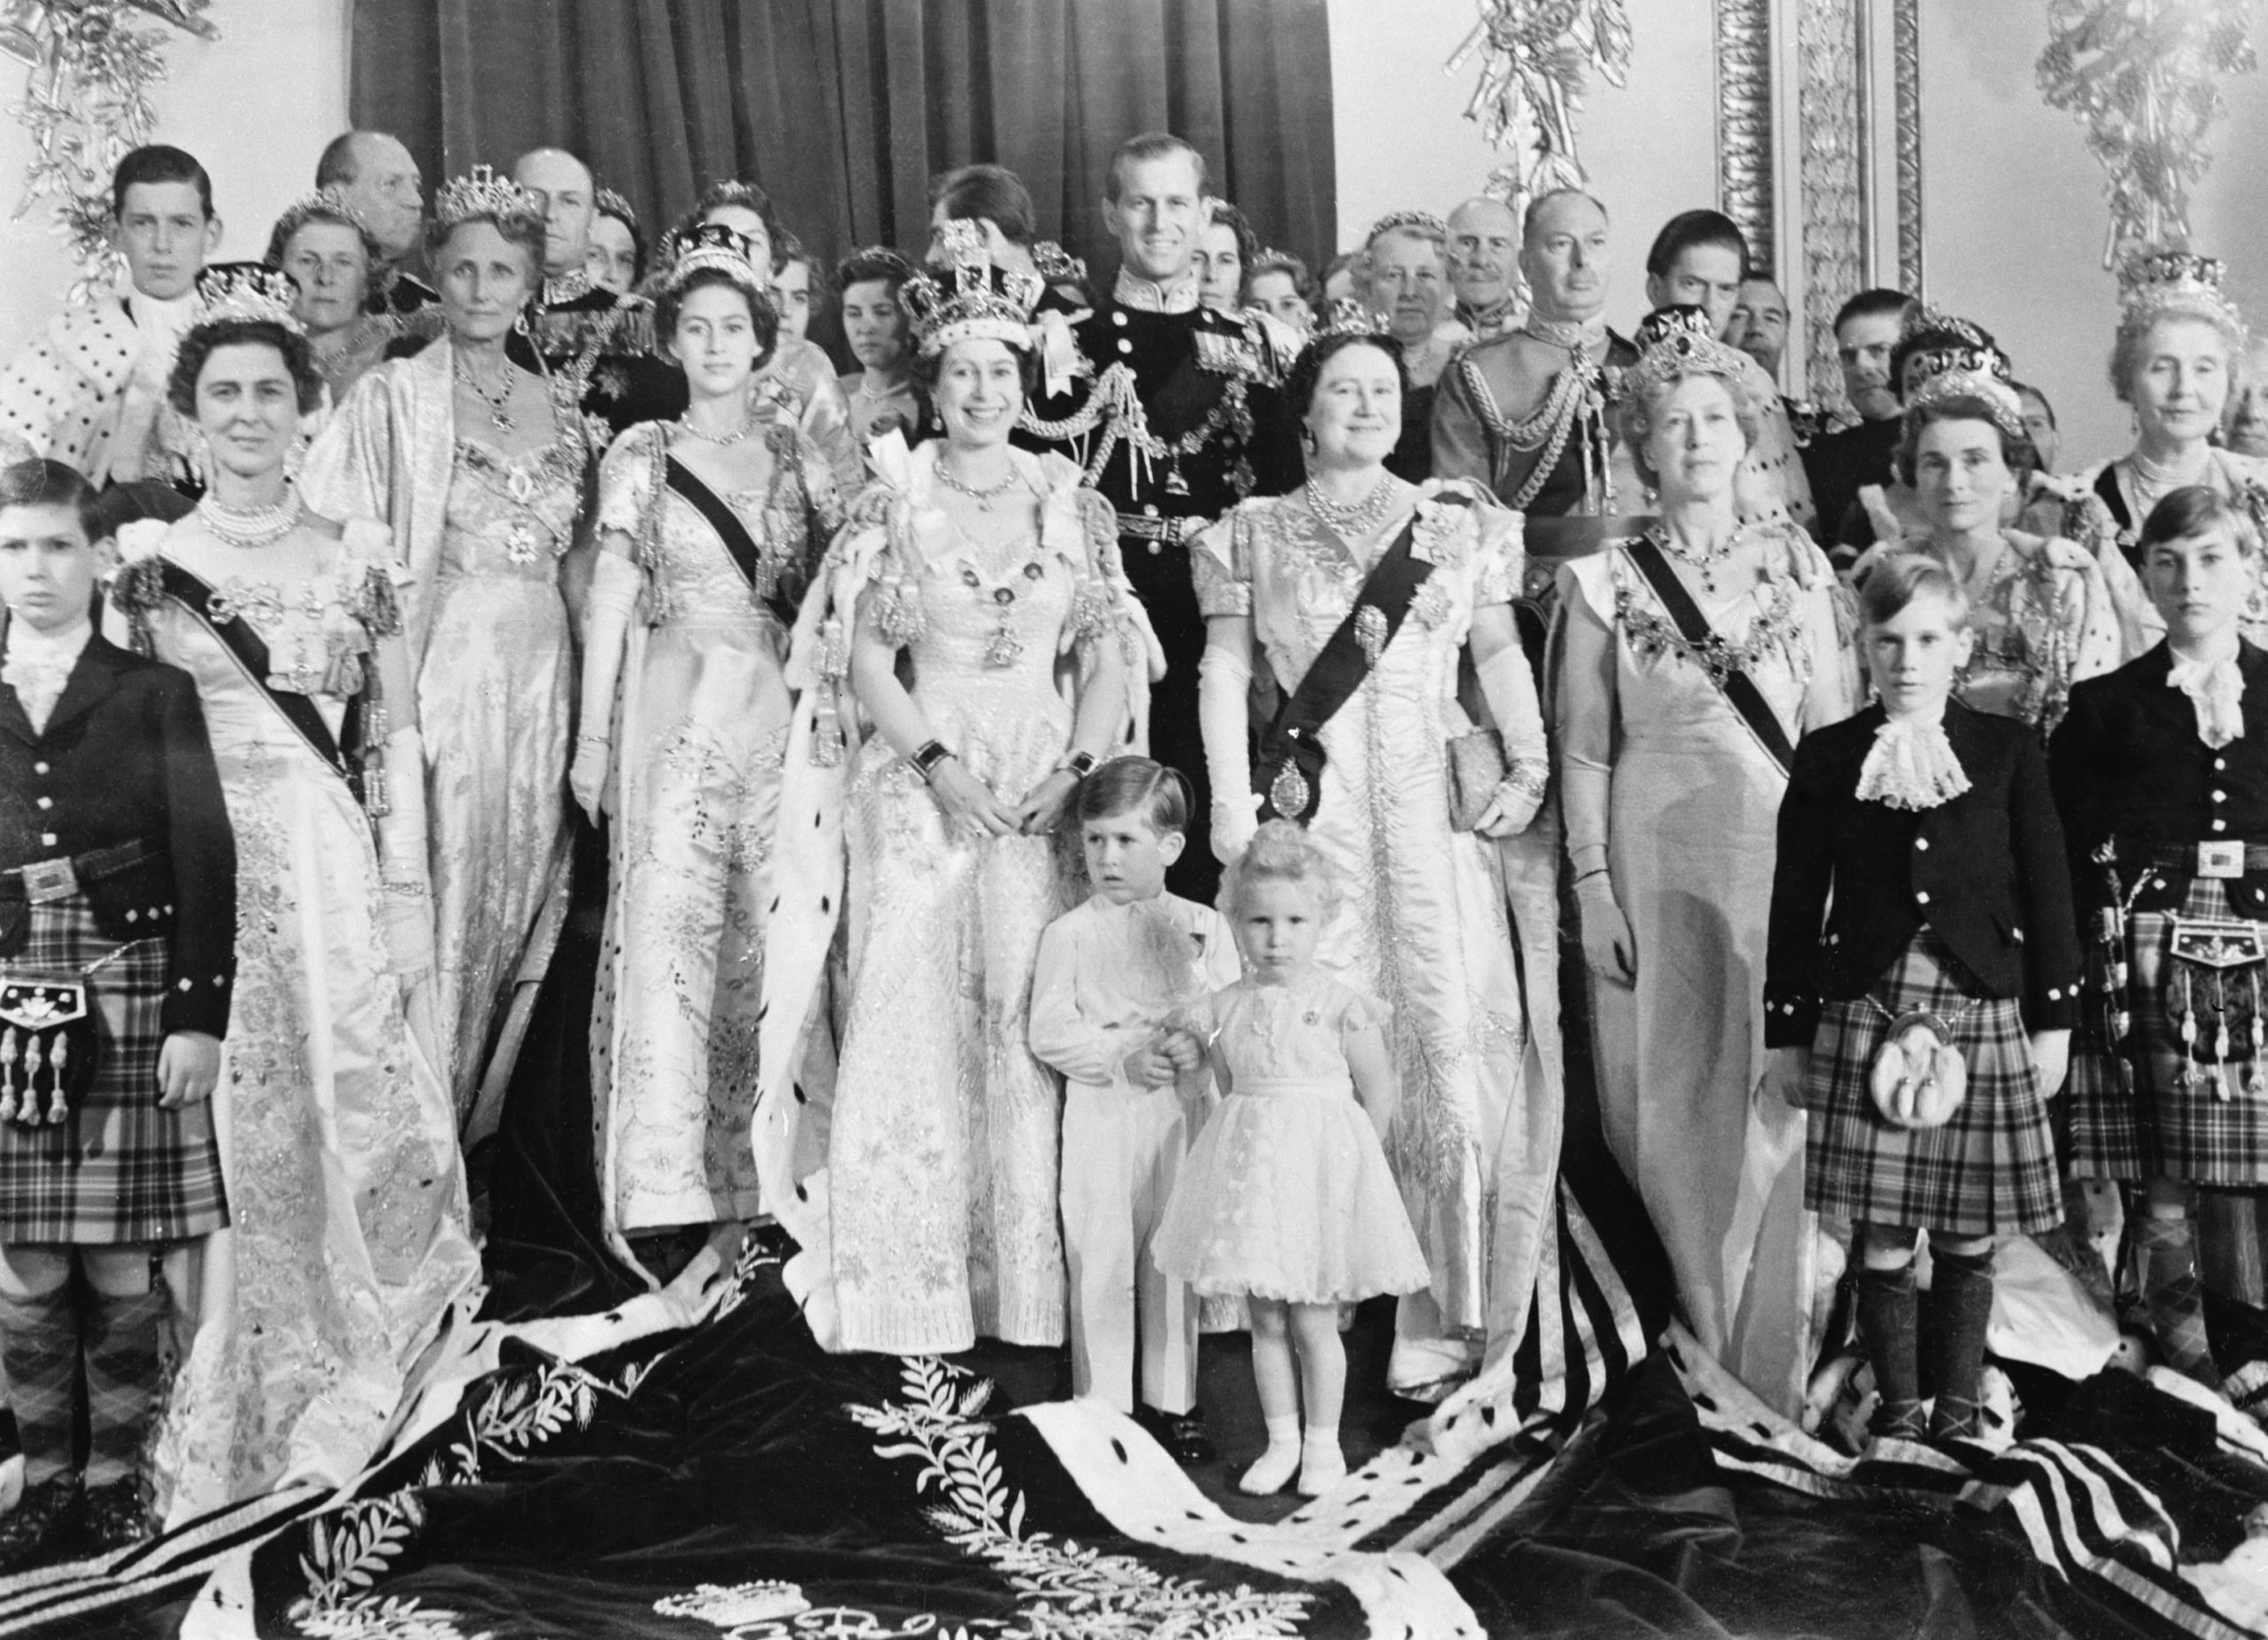 Queen Elizabeth Poses with Royal Family